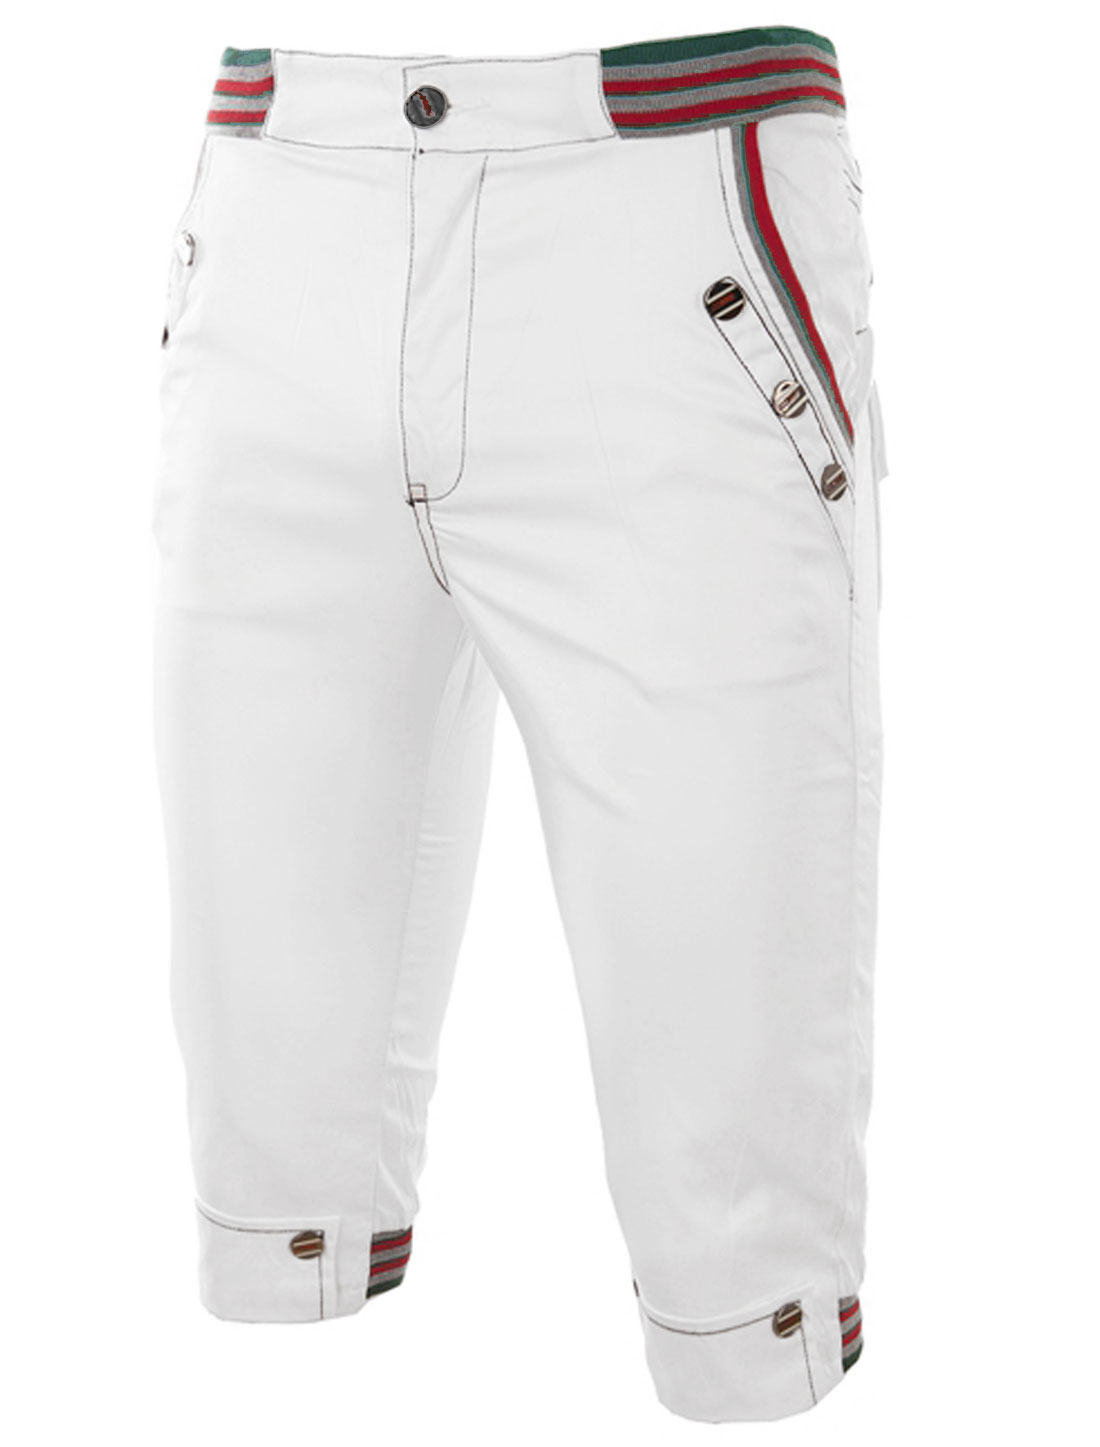 Men Zip Up One Button Up Buttons Decor Capris Pants White W28